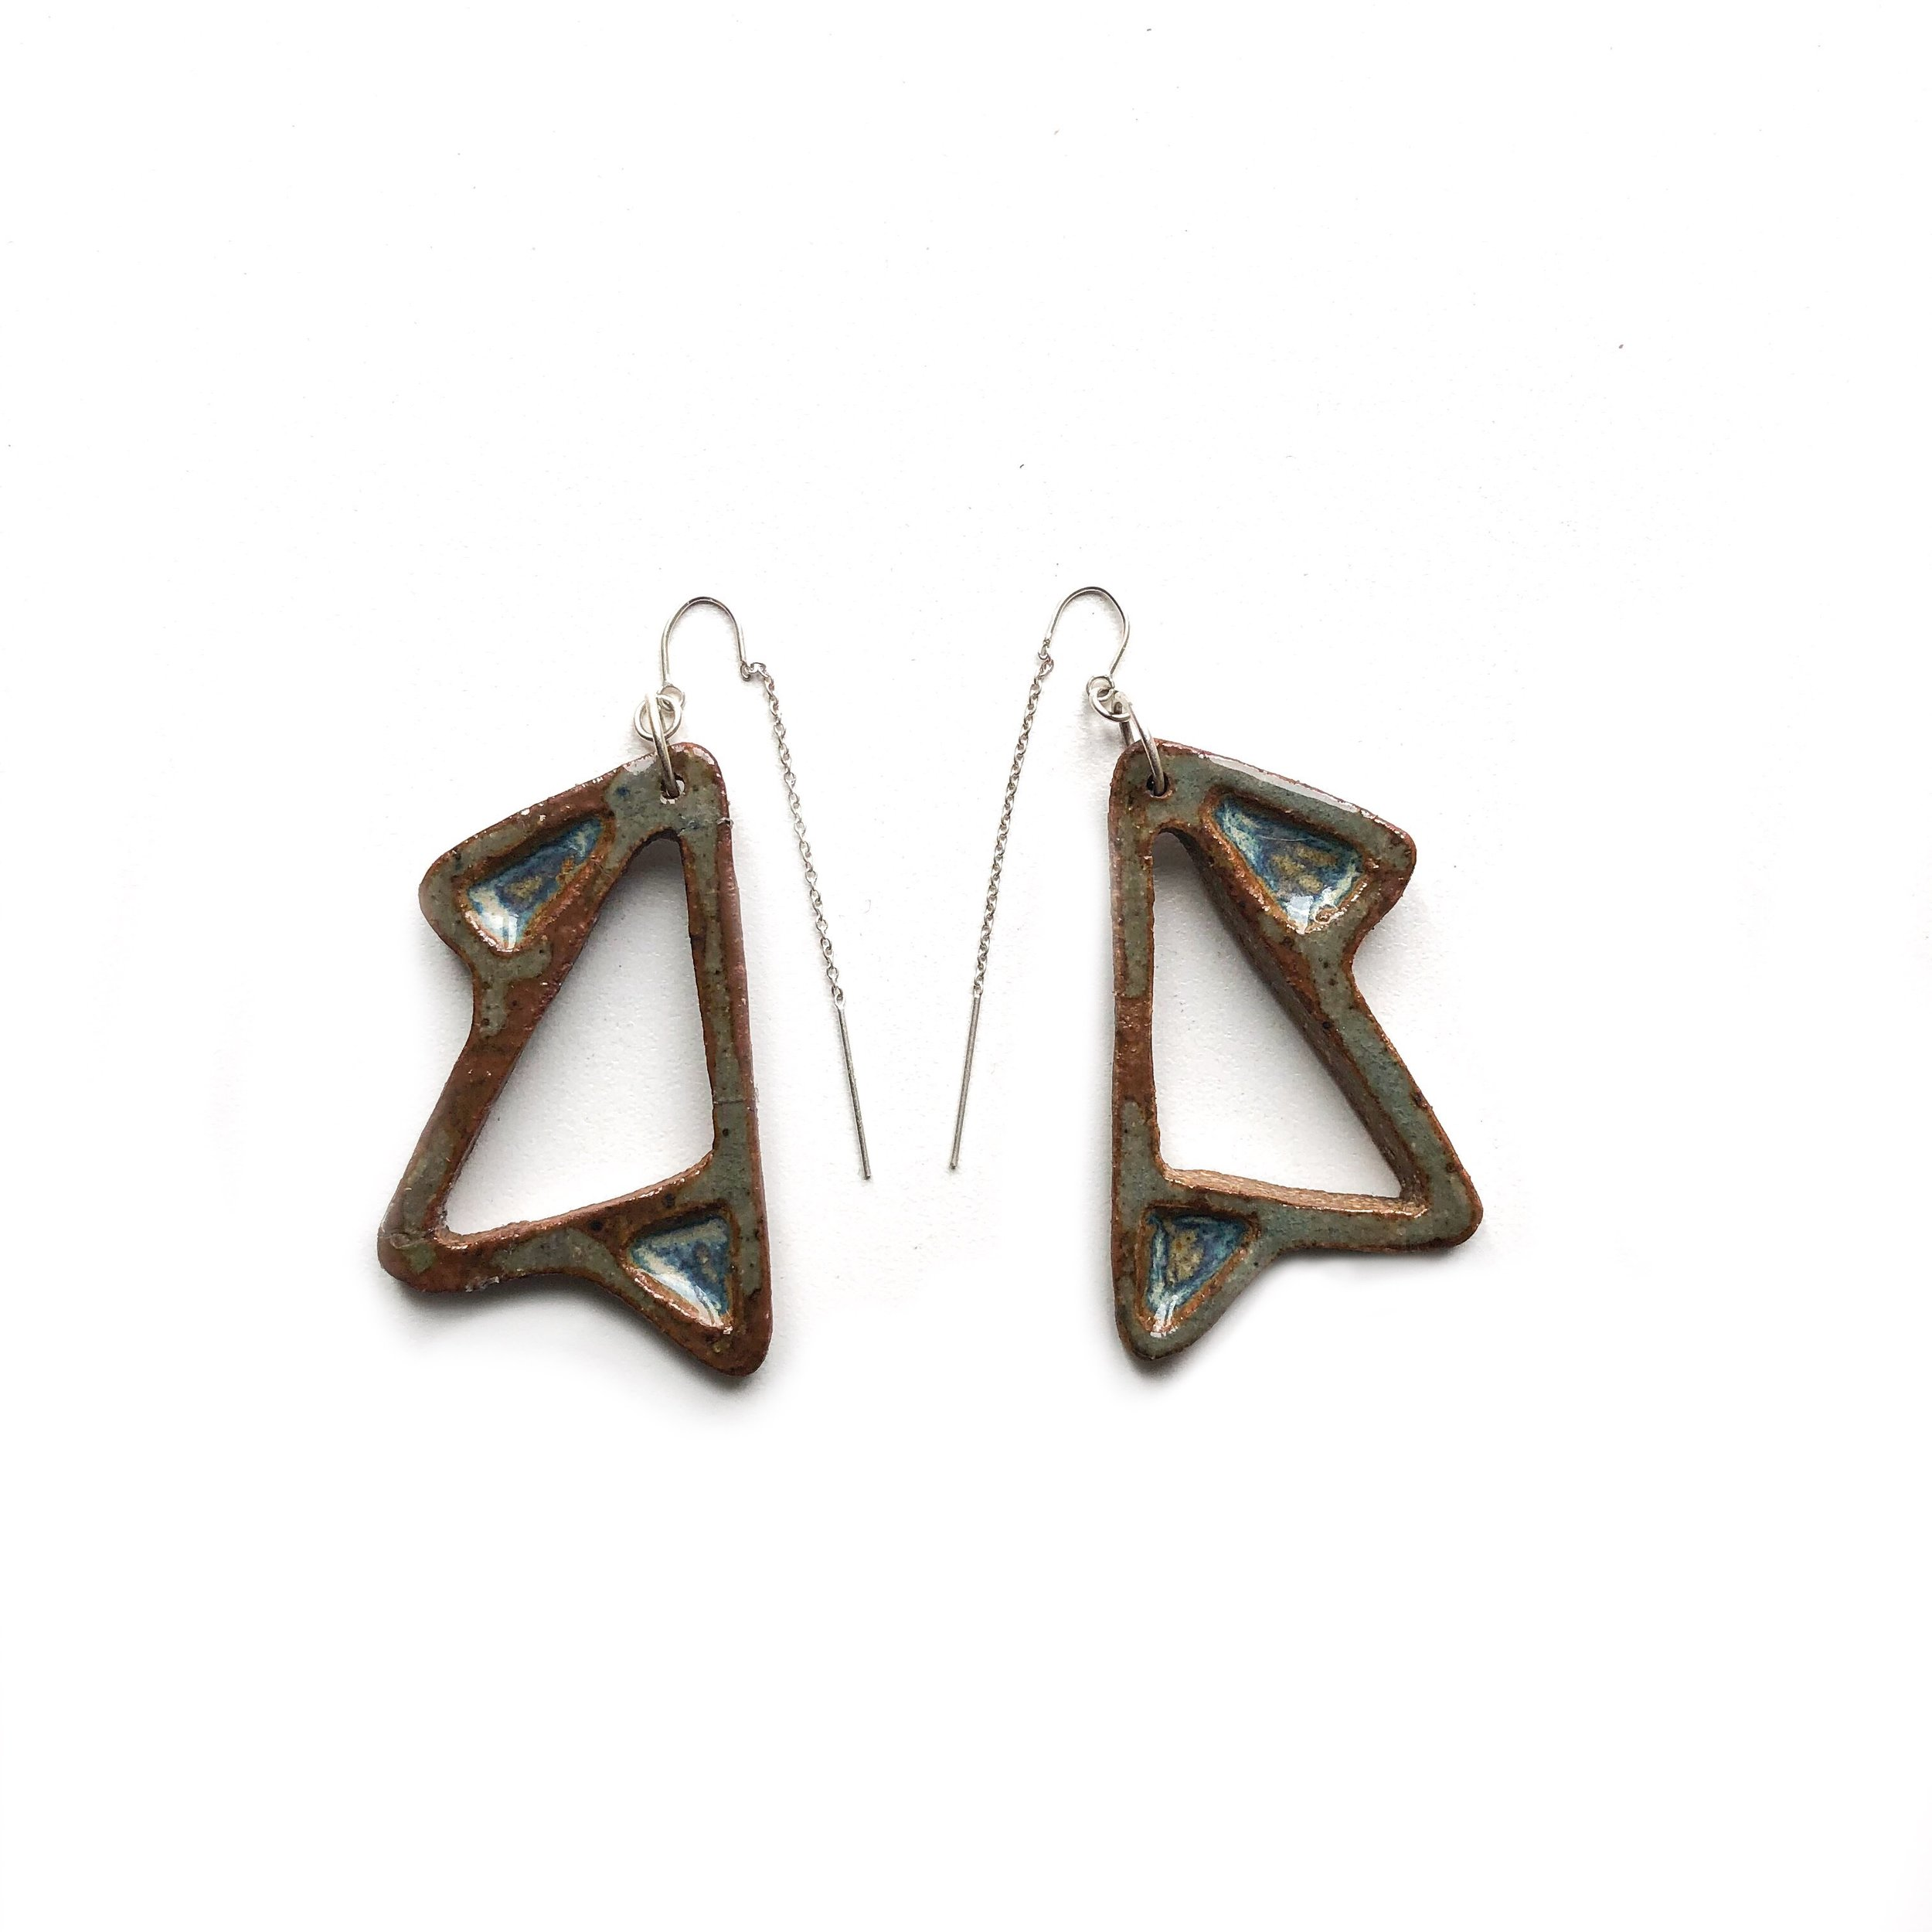 kushins_ceramic_earrings10.JPG